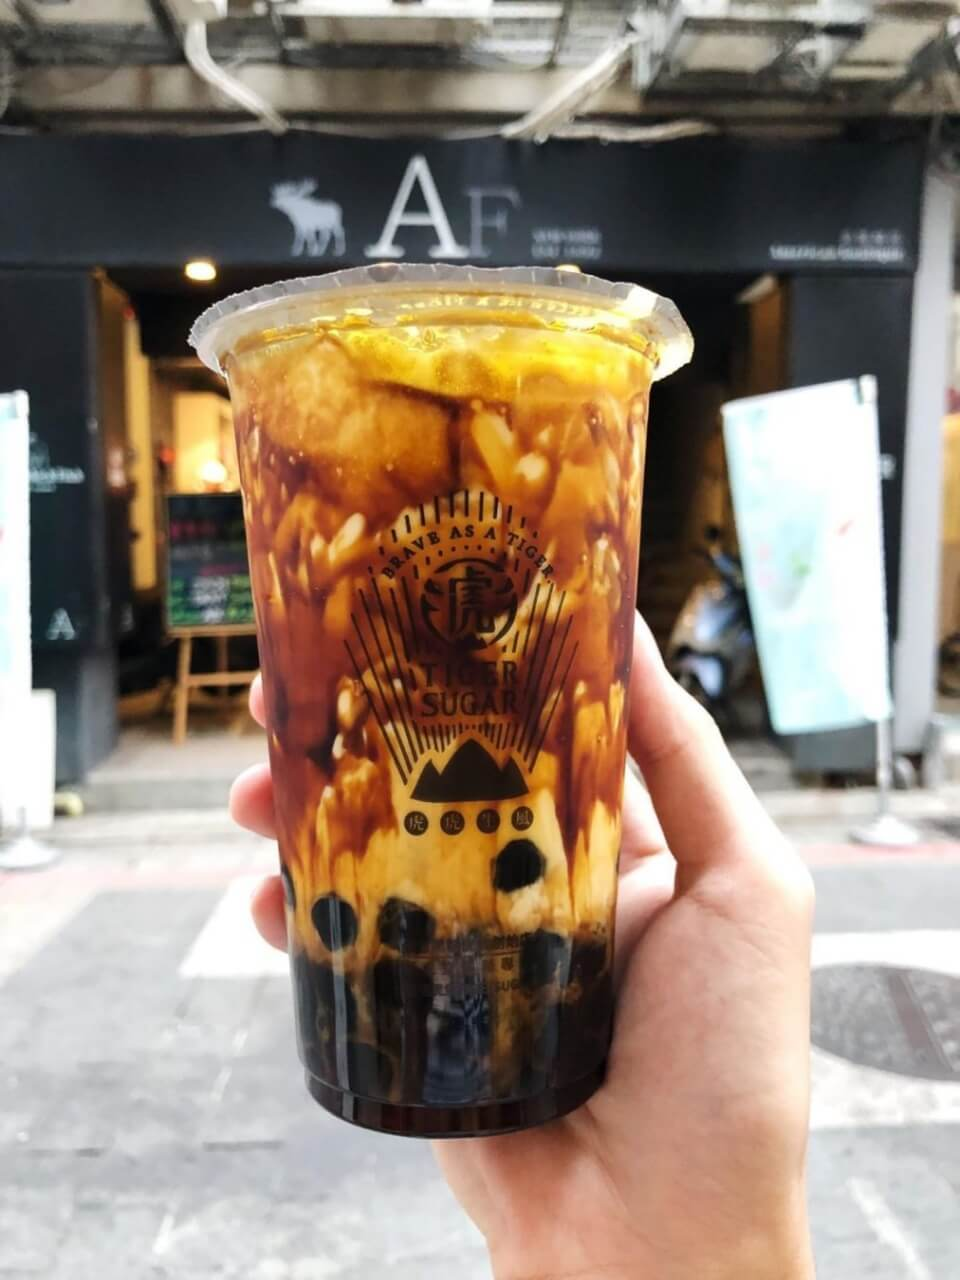 Taiwan bubble milk tea